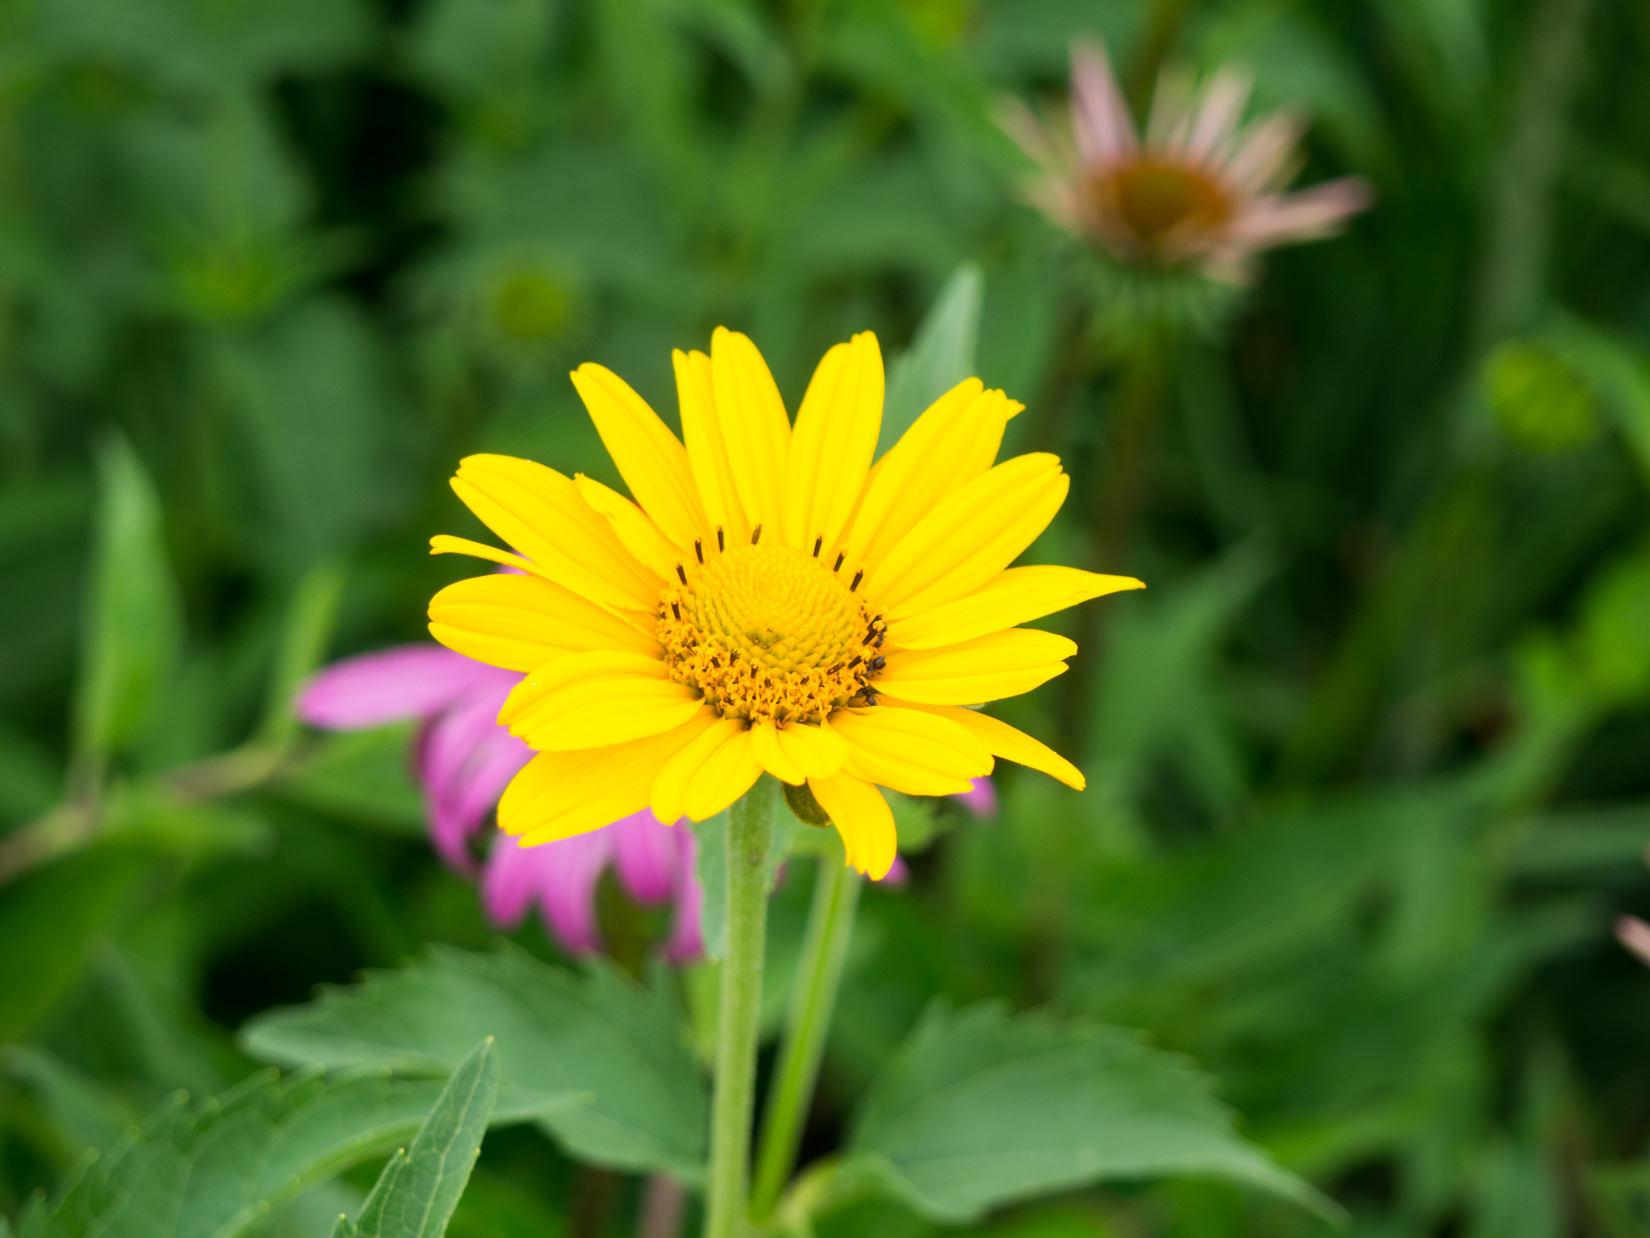 Yellow Flower in Garden – FOCA